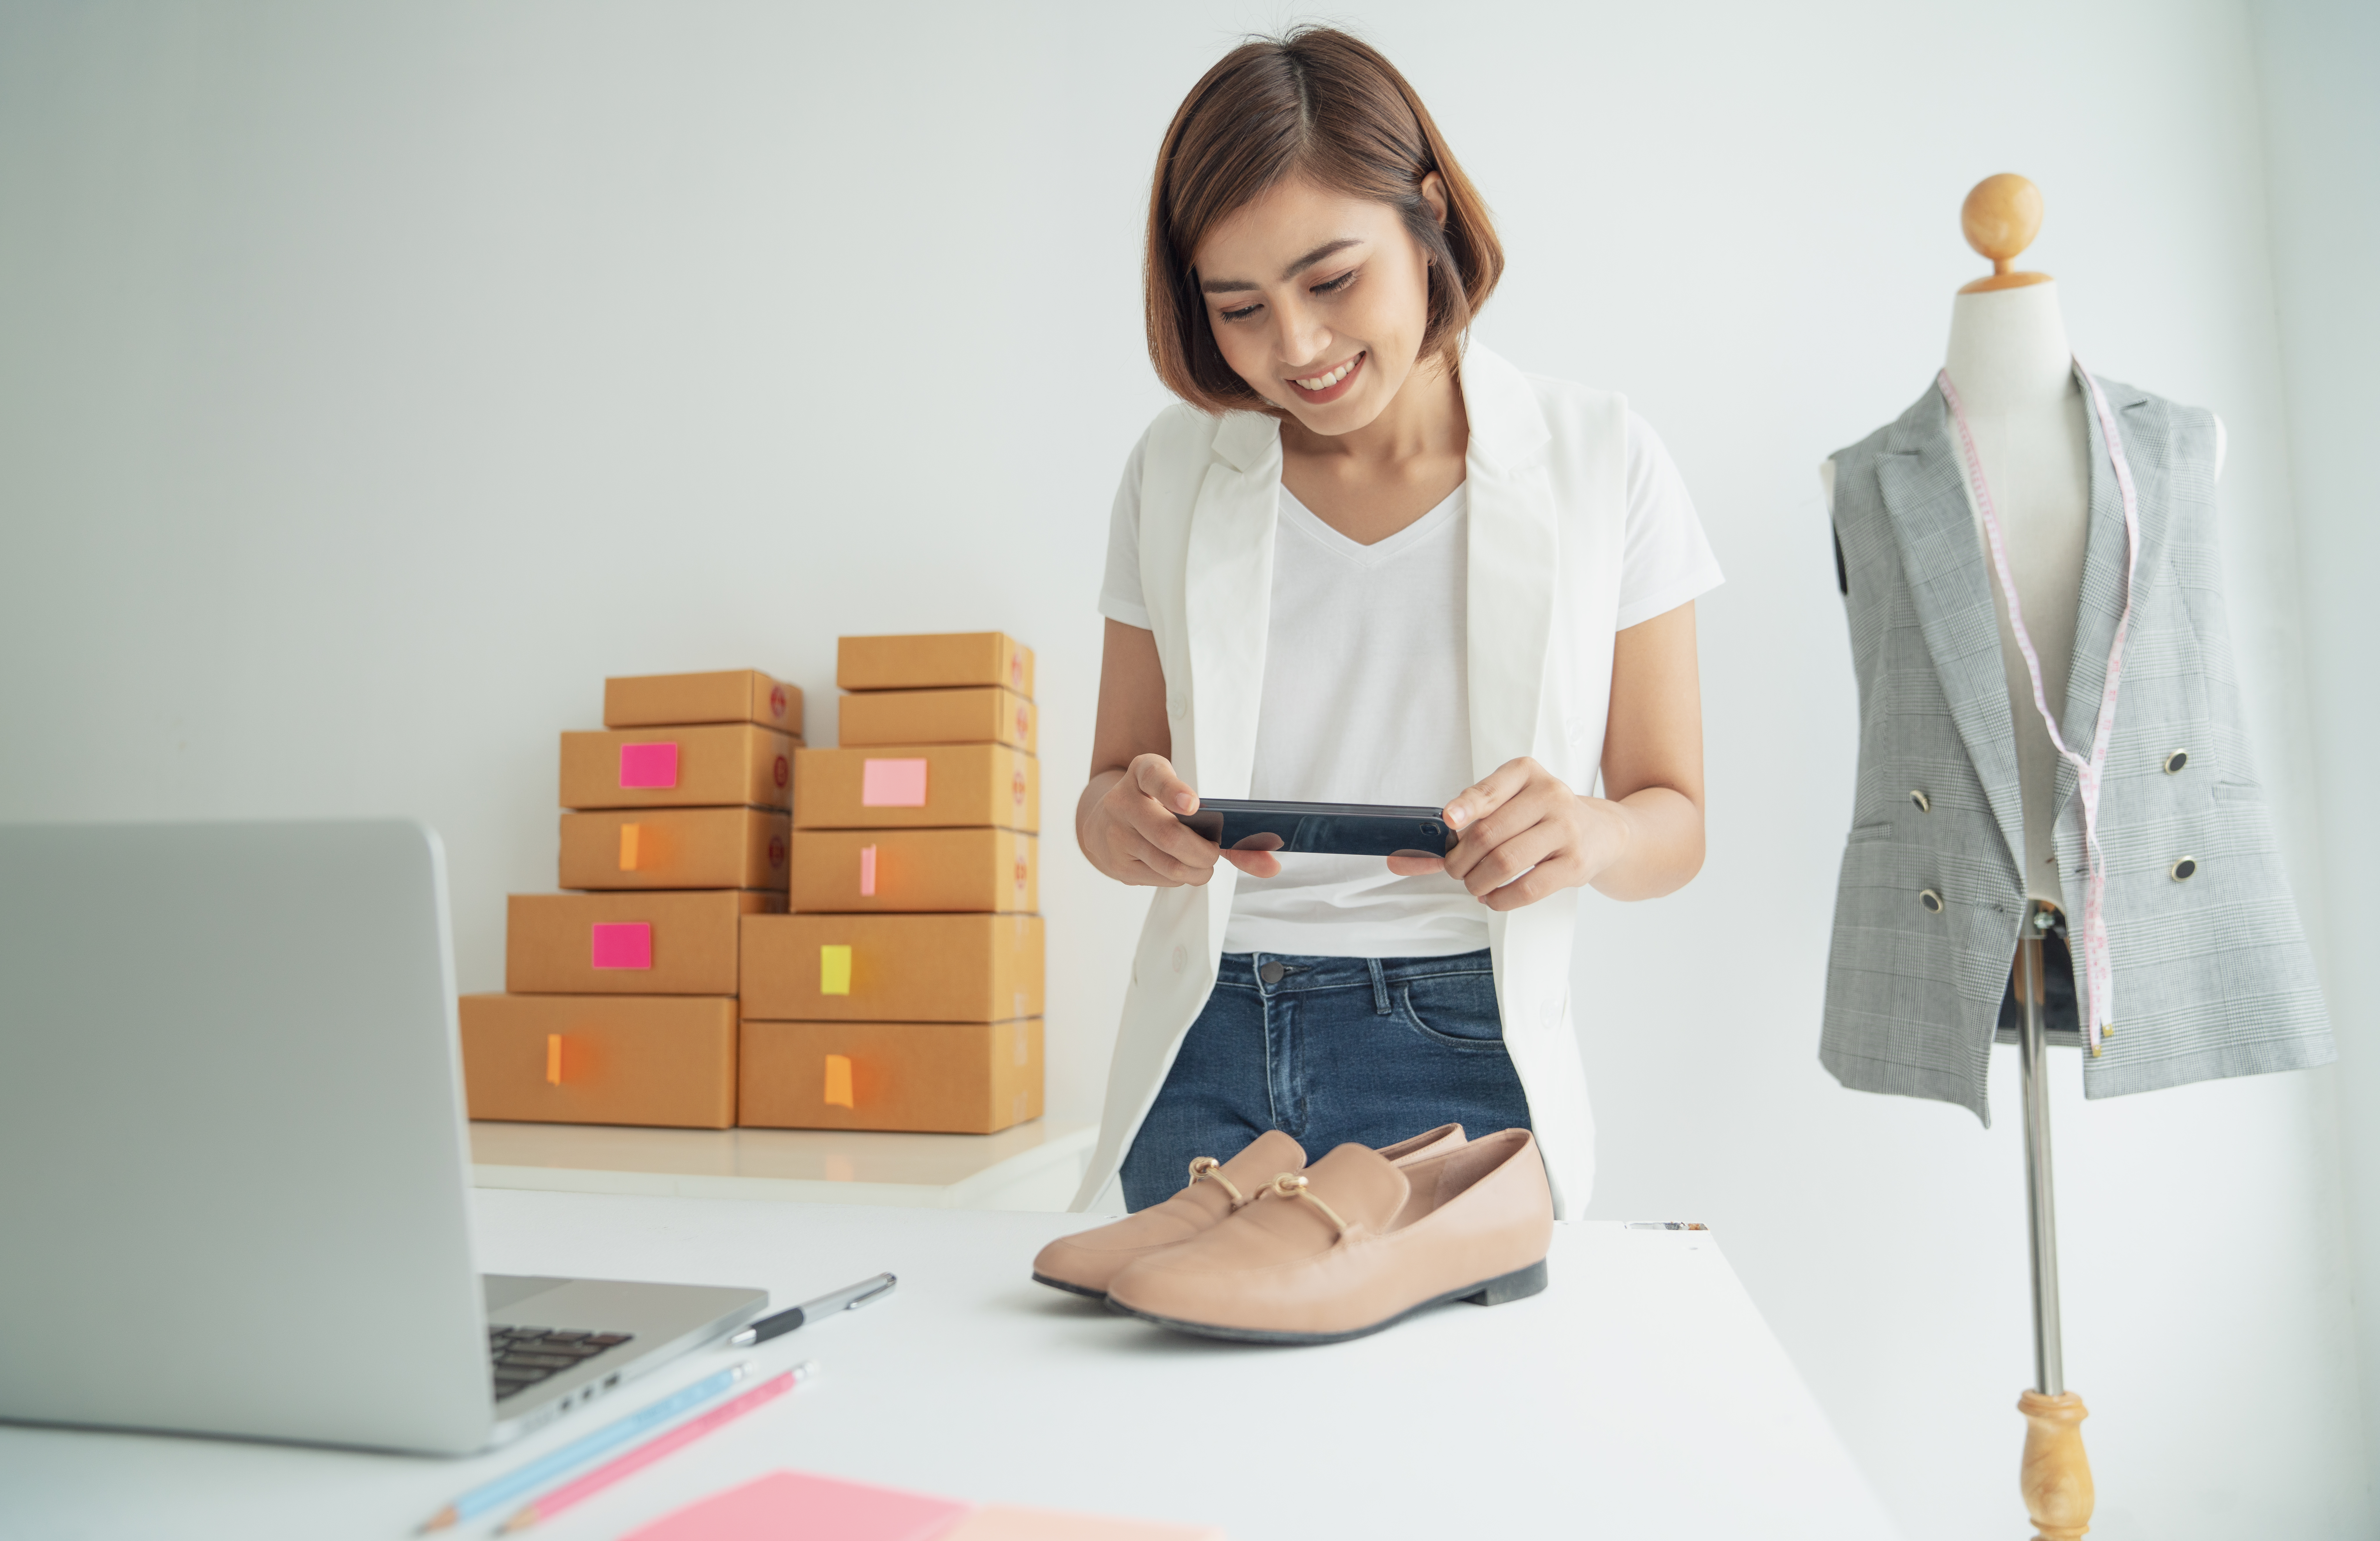 Image of a shop owner taking a photograph of a pair of shoes before mailing to represent how small businesses can compete with Amazon.